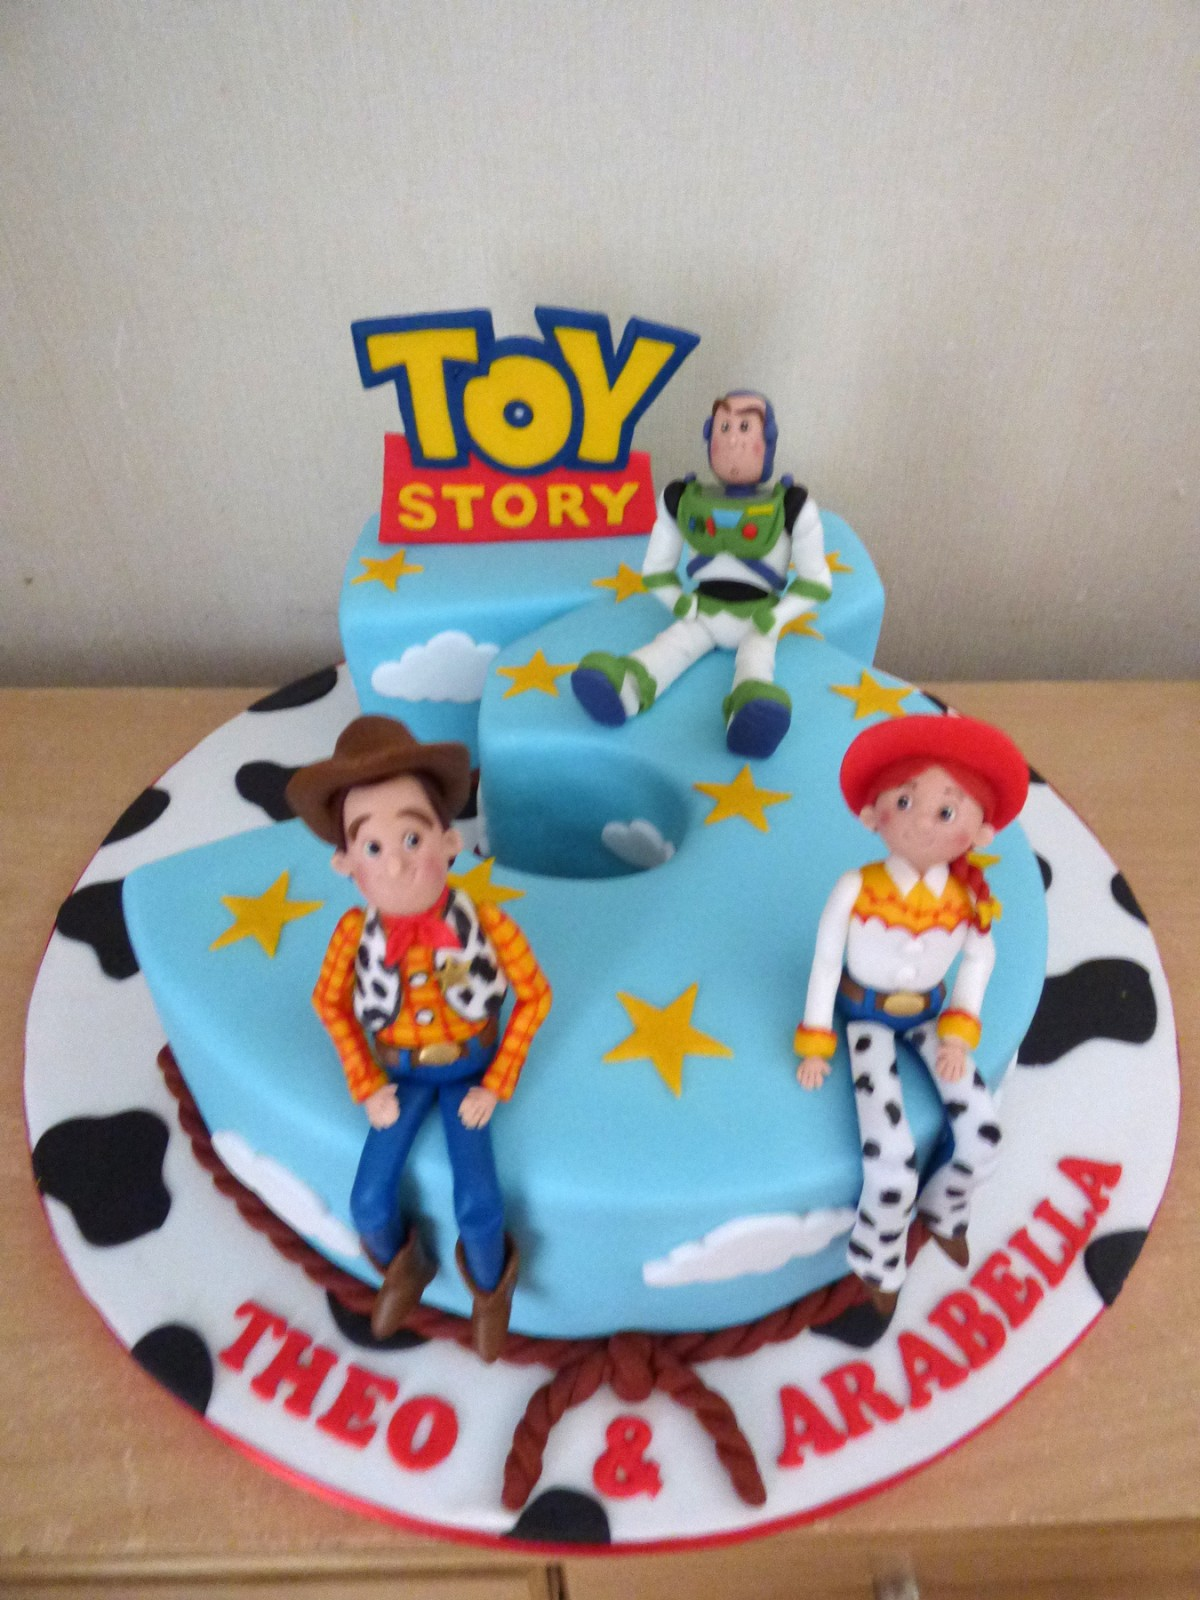 Toy Story Number 3 Birthday Cake Susies Cakes